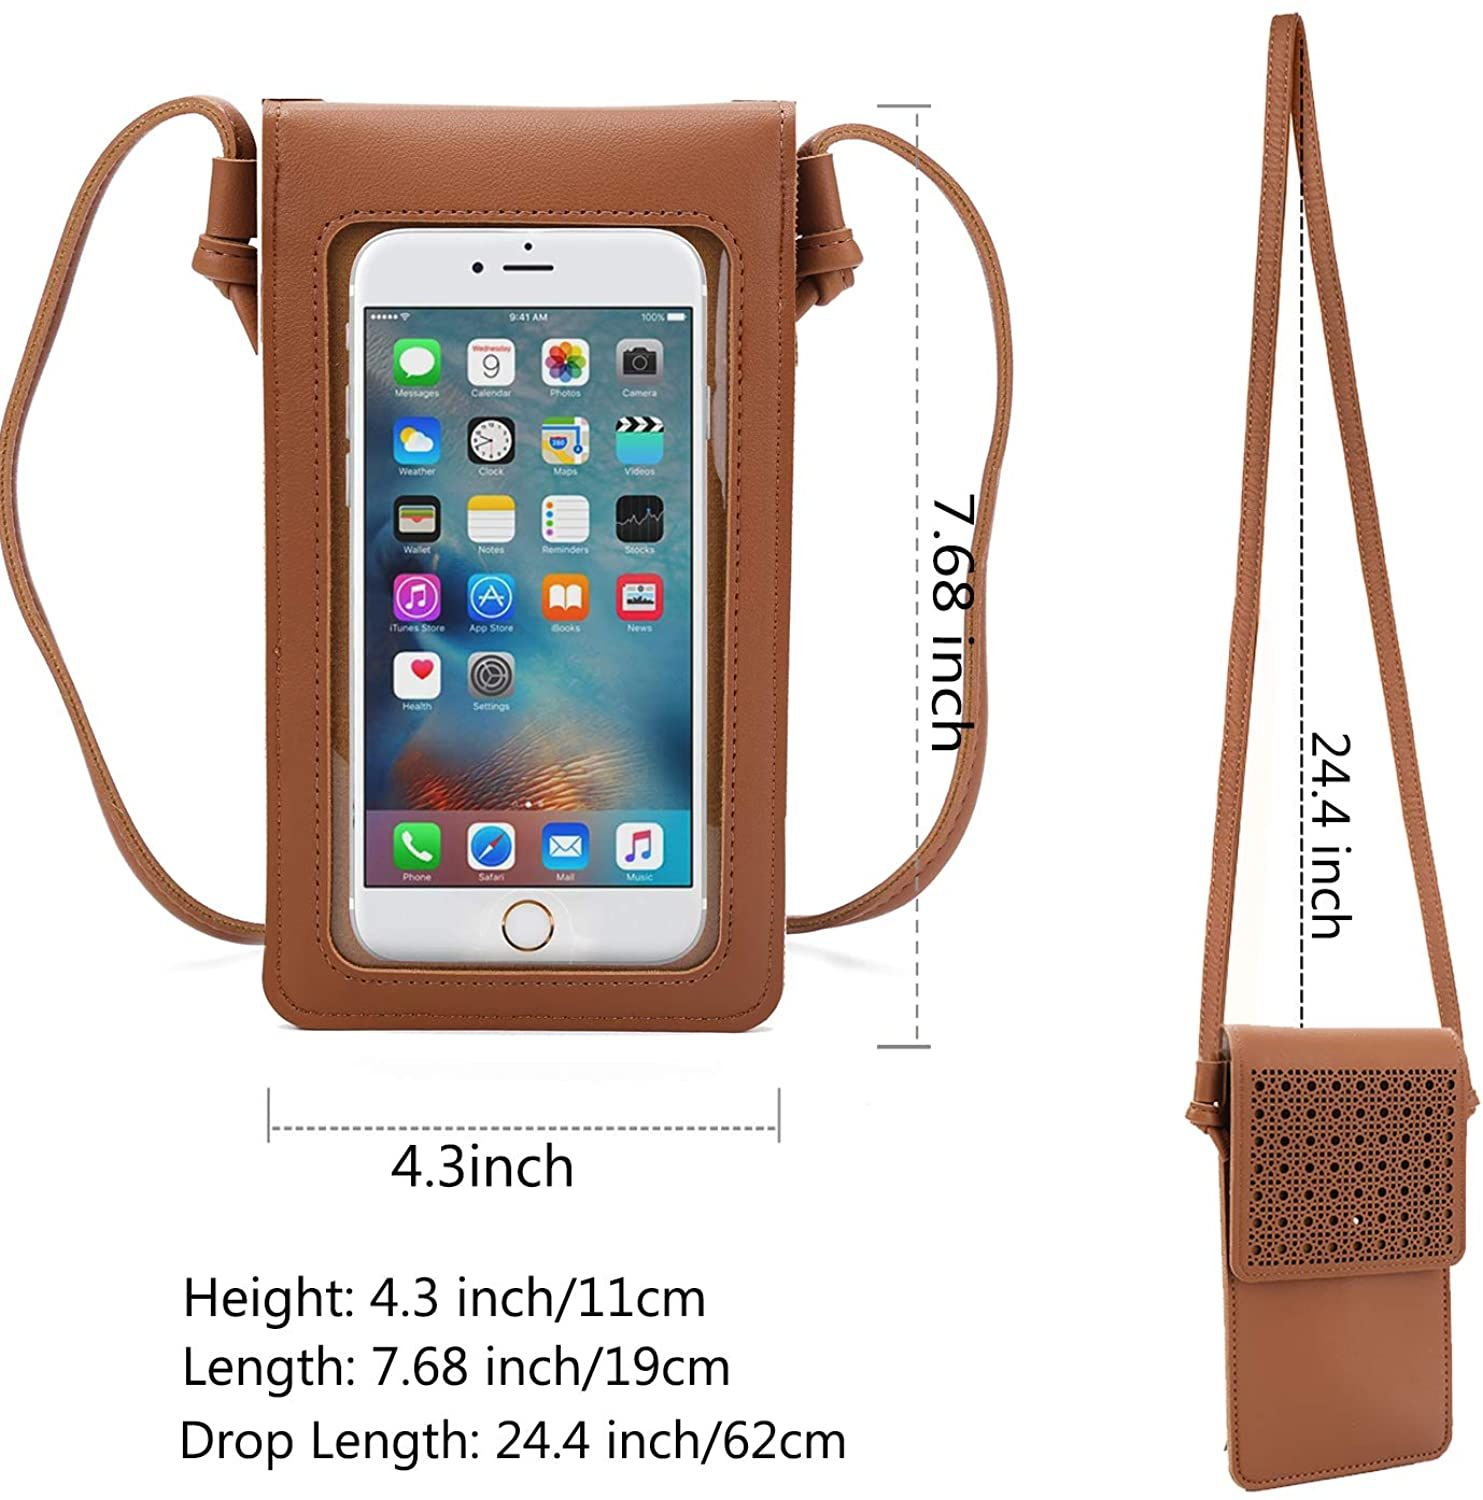 Waterproof Leather Hollow Touch Screen Purse With Clear Window Brown 4fairdeal Clear Windows Purses Touch Screen